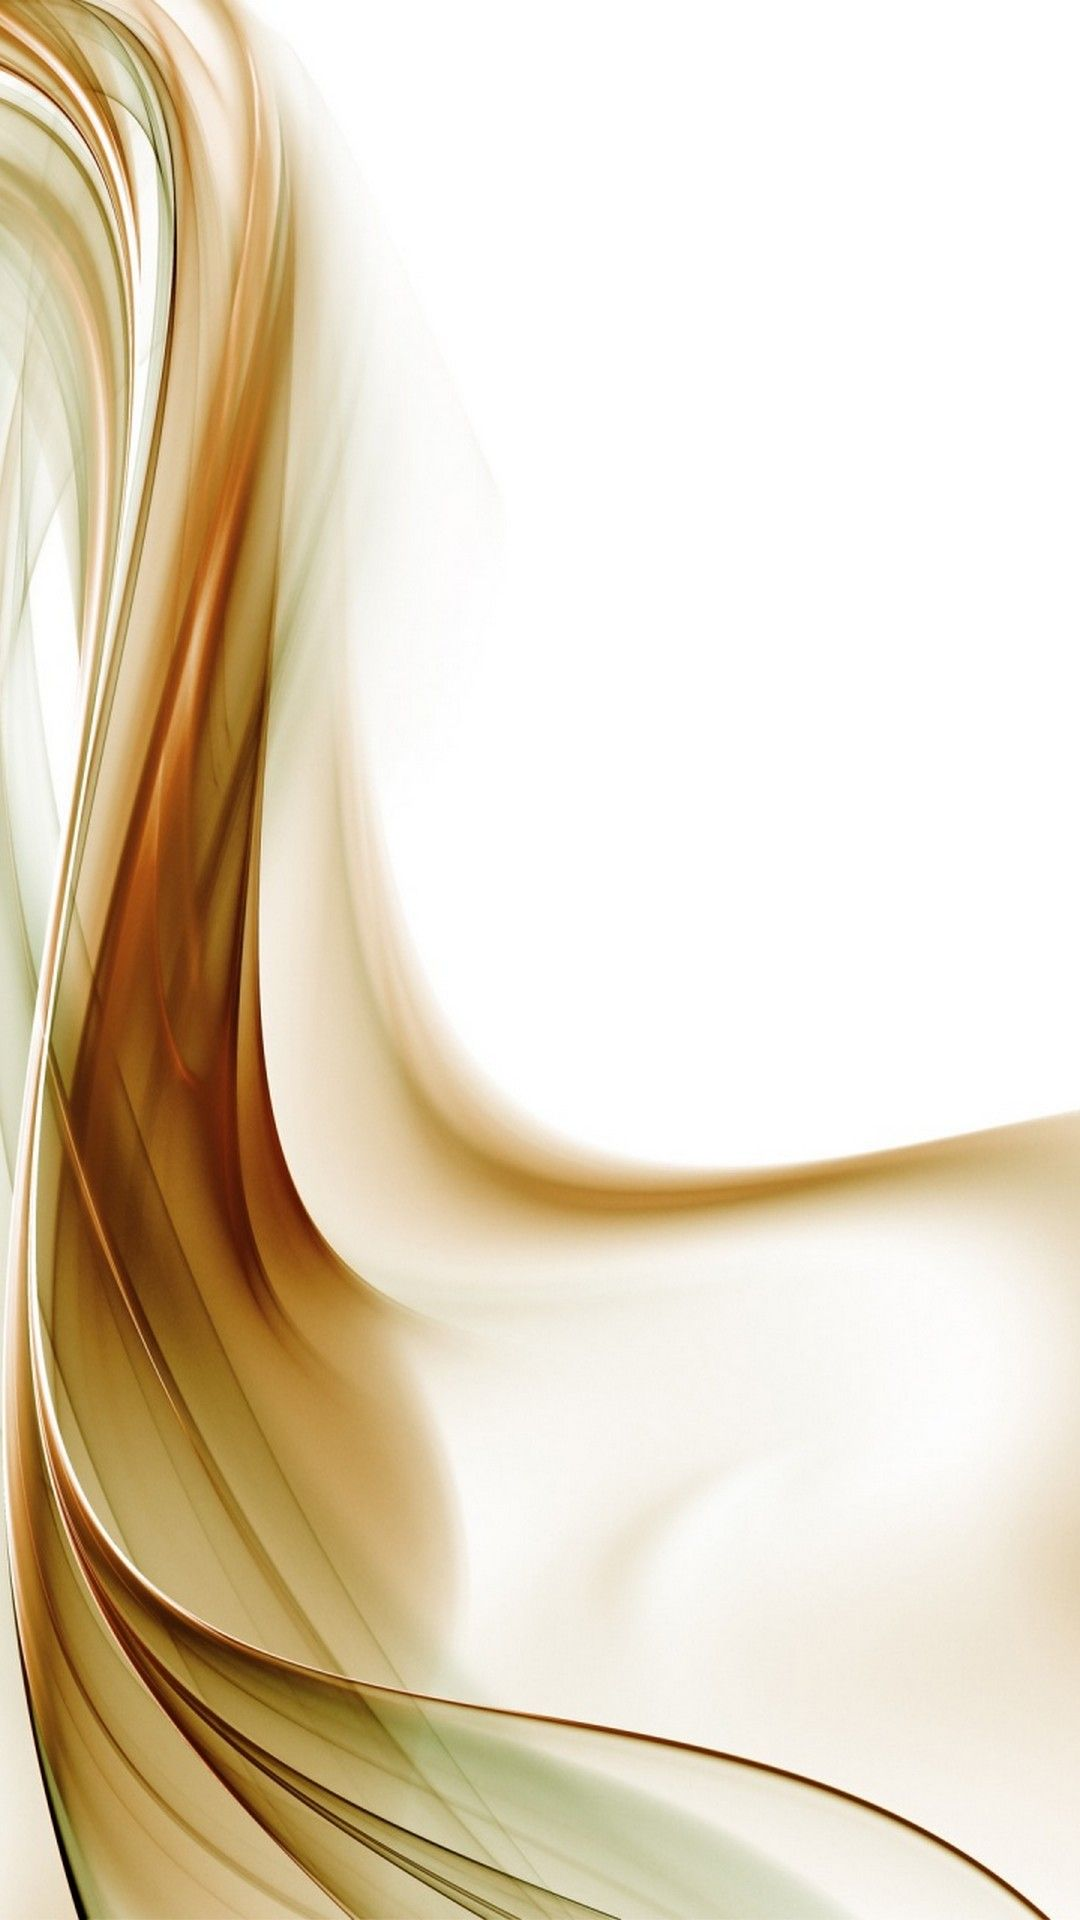 White With Gold Wallpapers - Wallpaper Cave